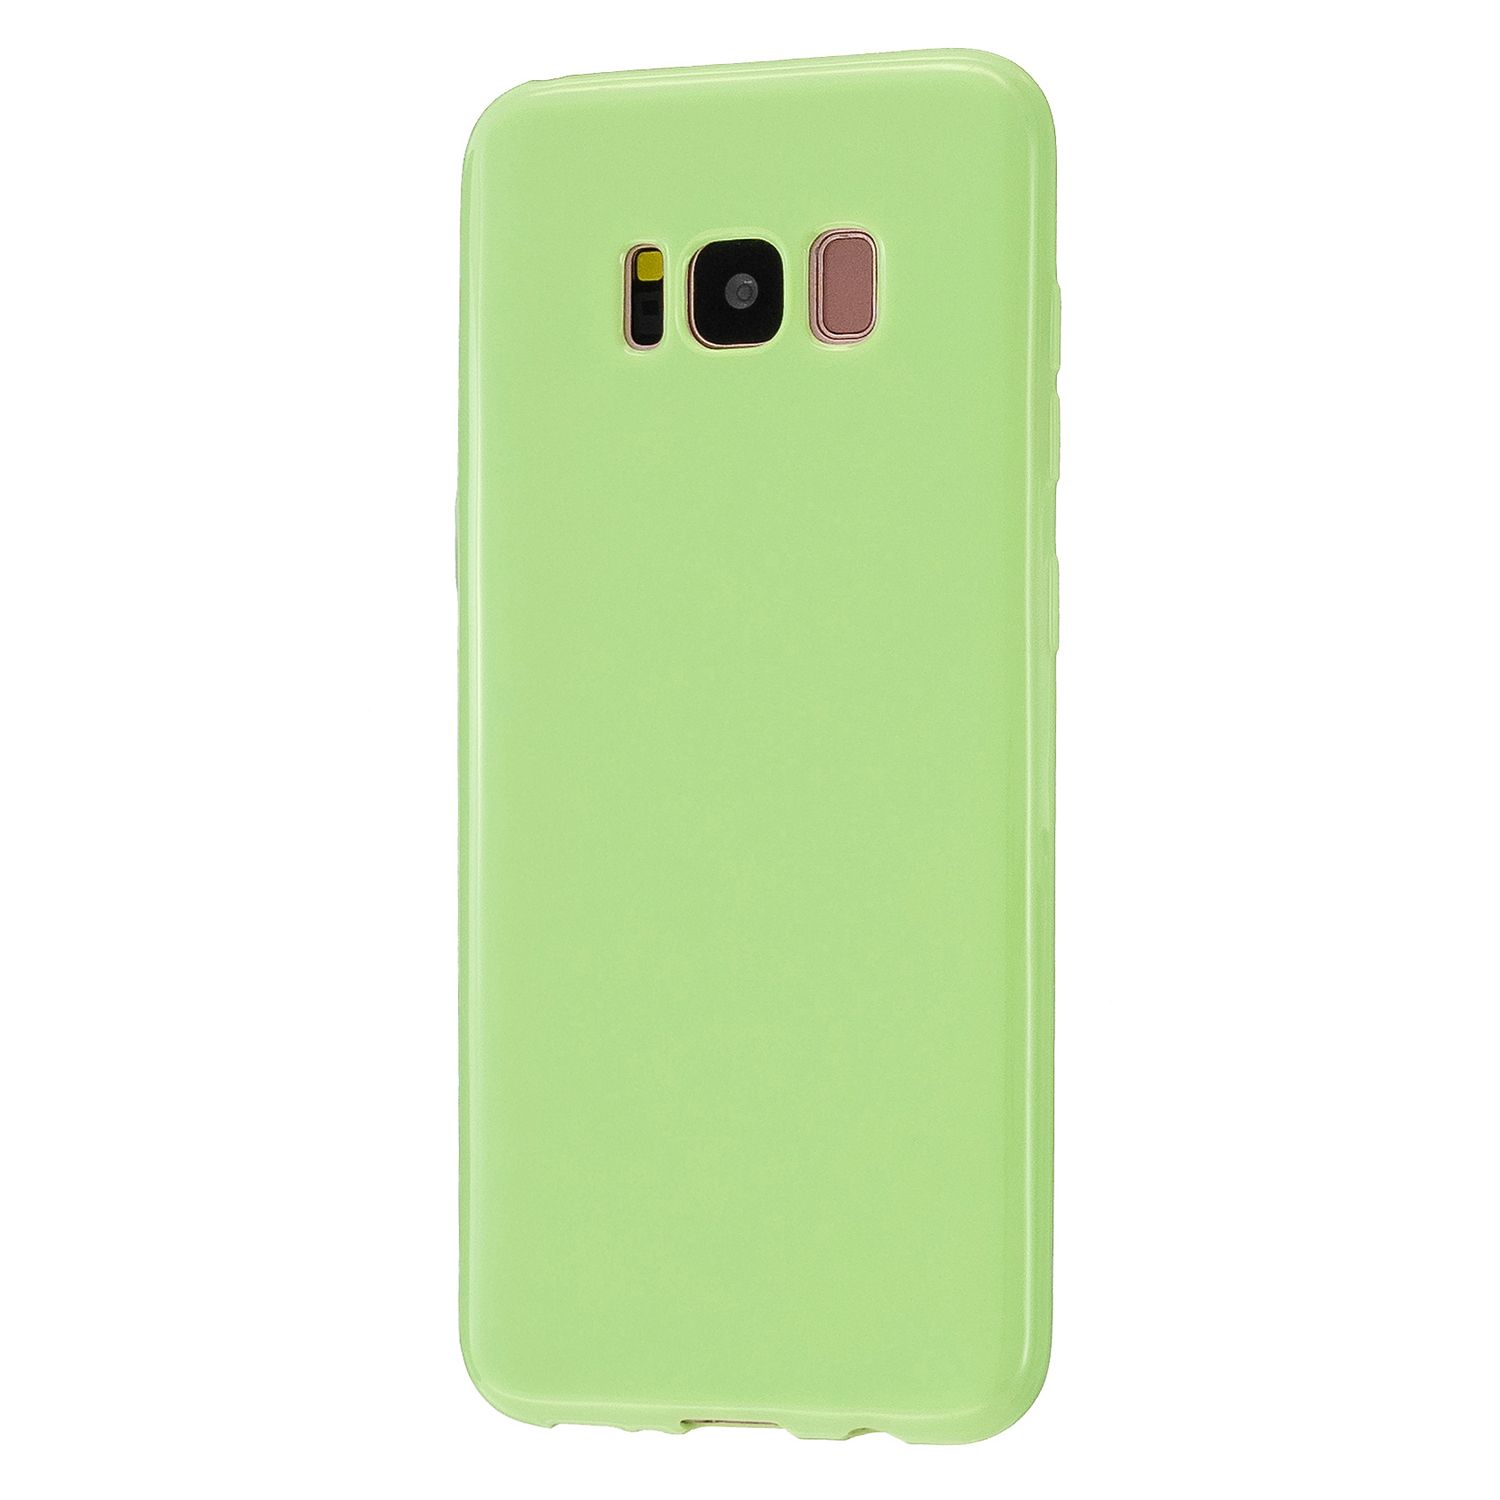 For Samsung S8/S8 Plus Smartphone Case Soft Hands Feel Precise Cutouts Anti-scrathc Mobile Phone TPU Shell Fluorescent green